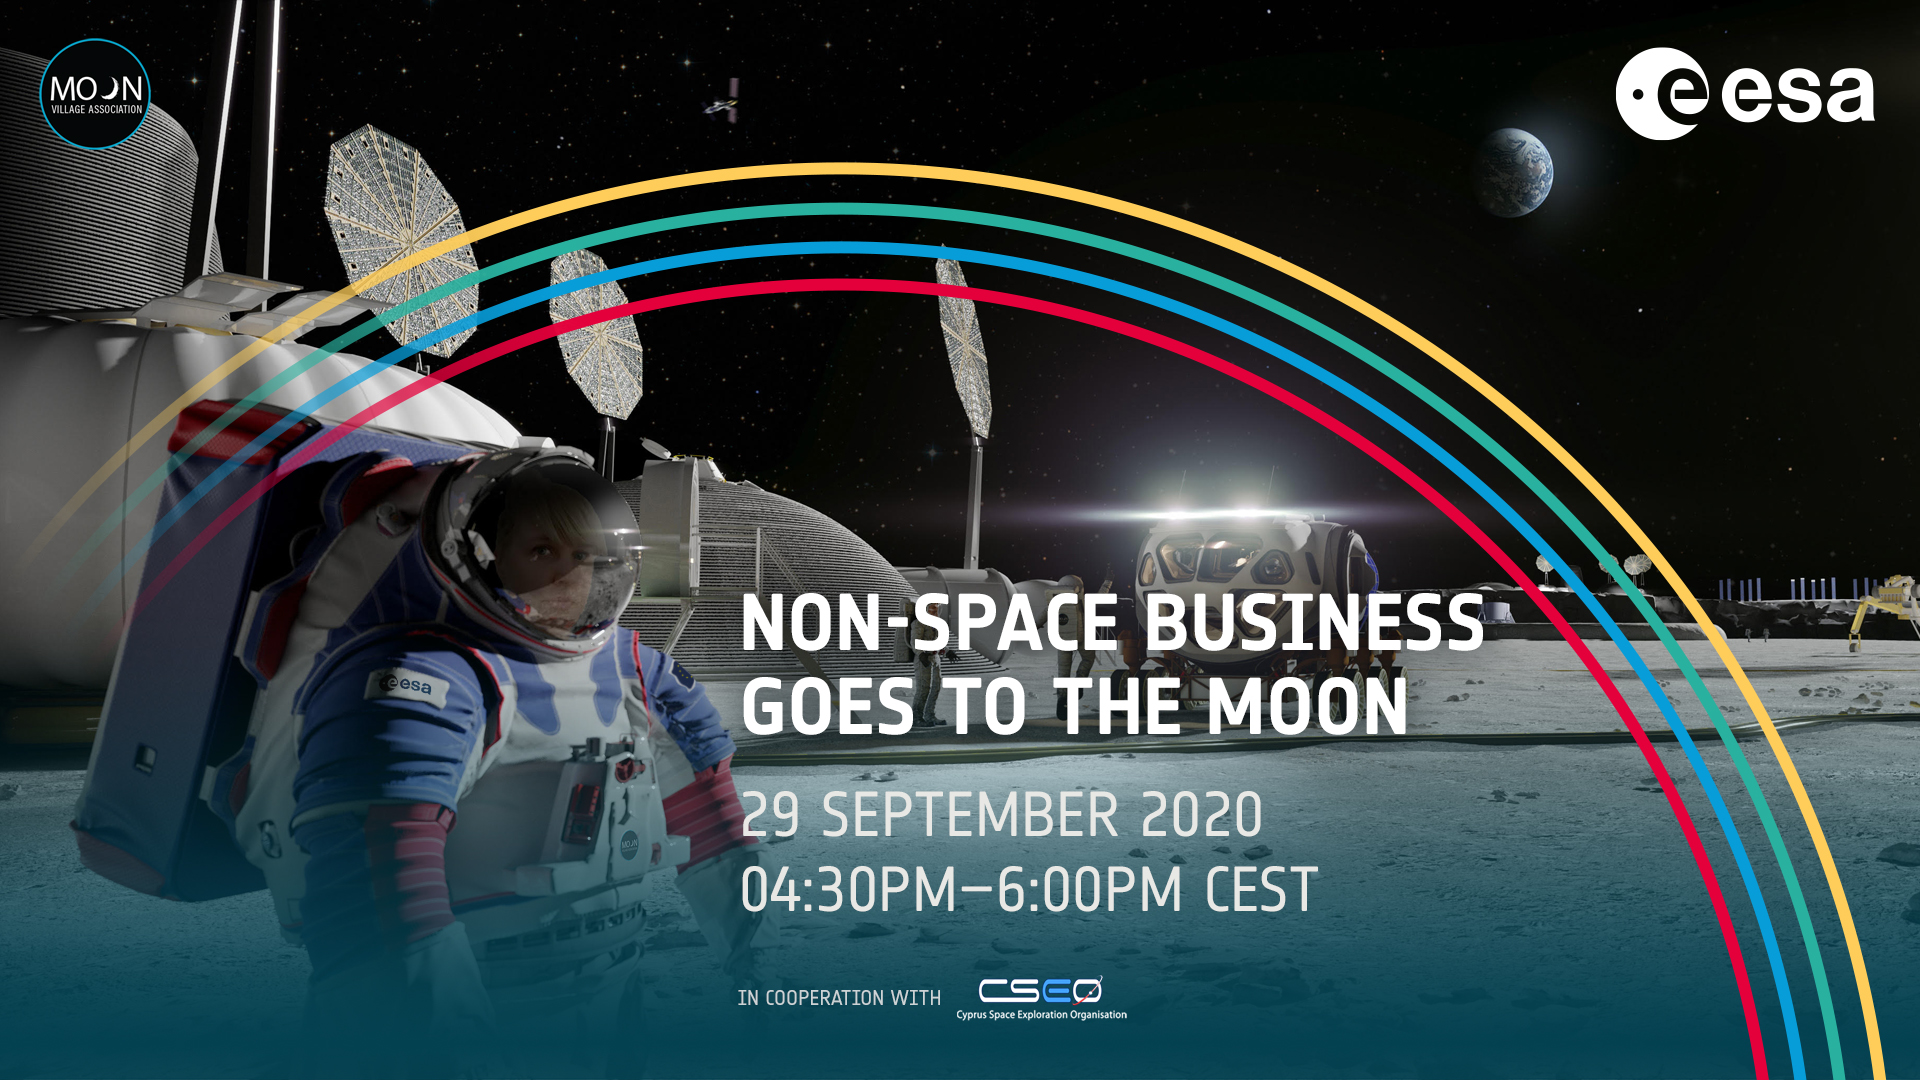 Non-space business goes to the Moon